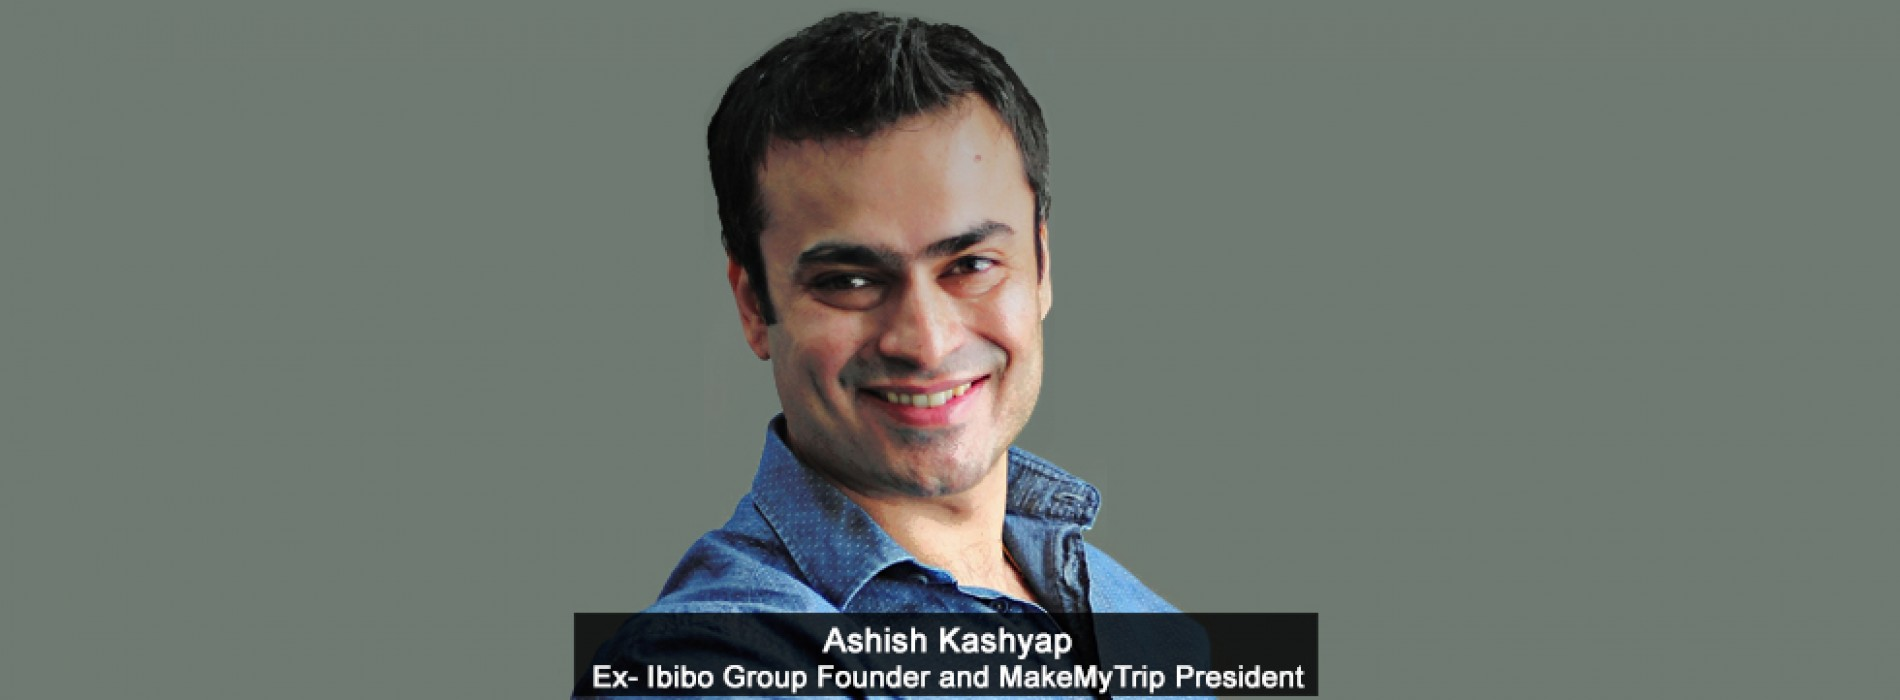 Ibibo Group Founder and MakeMyTrip President Ashish Kashyap resigns